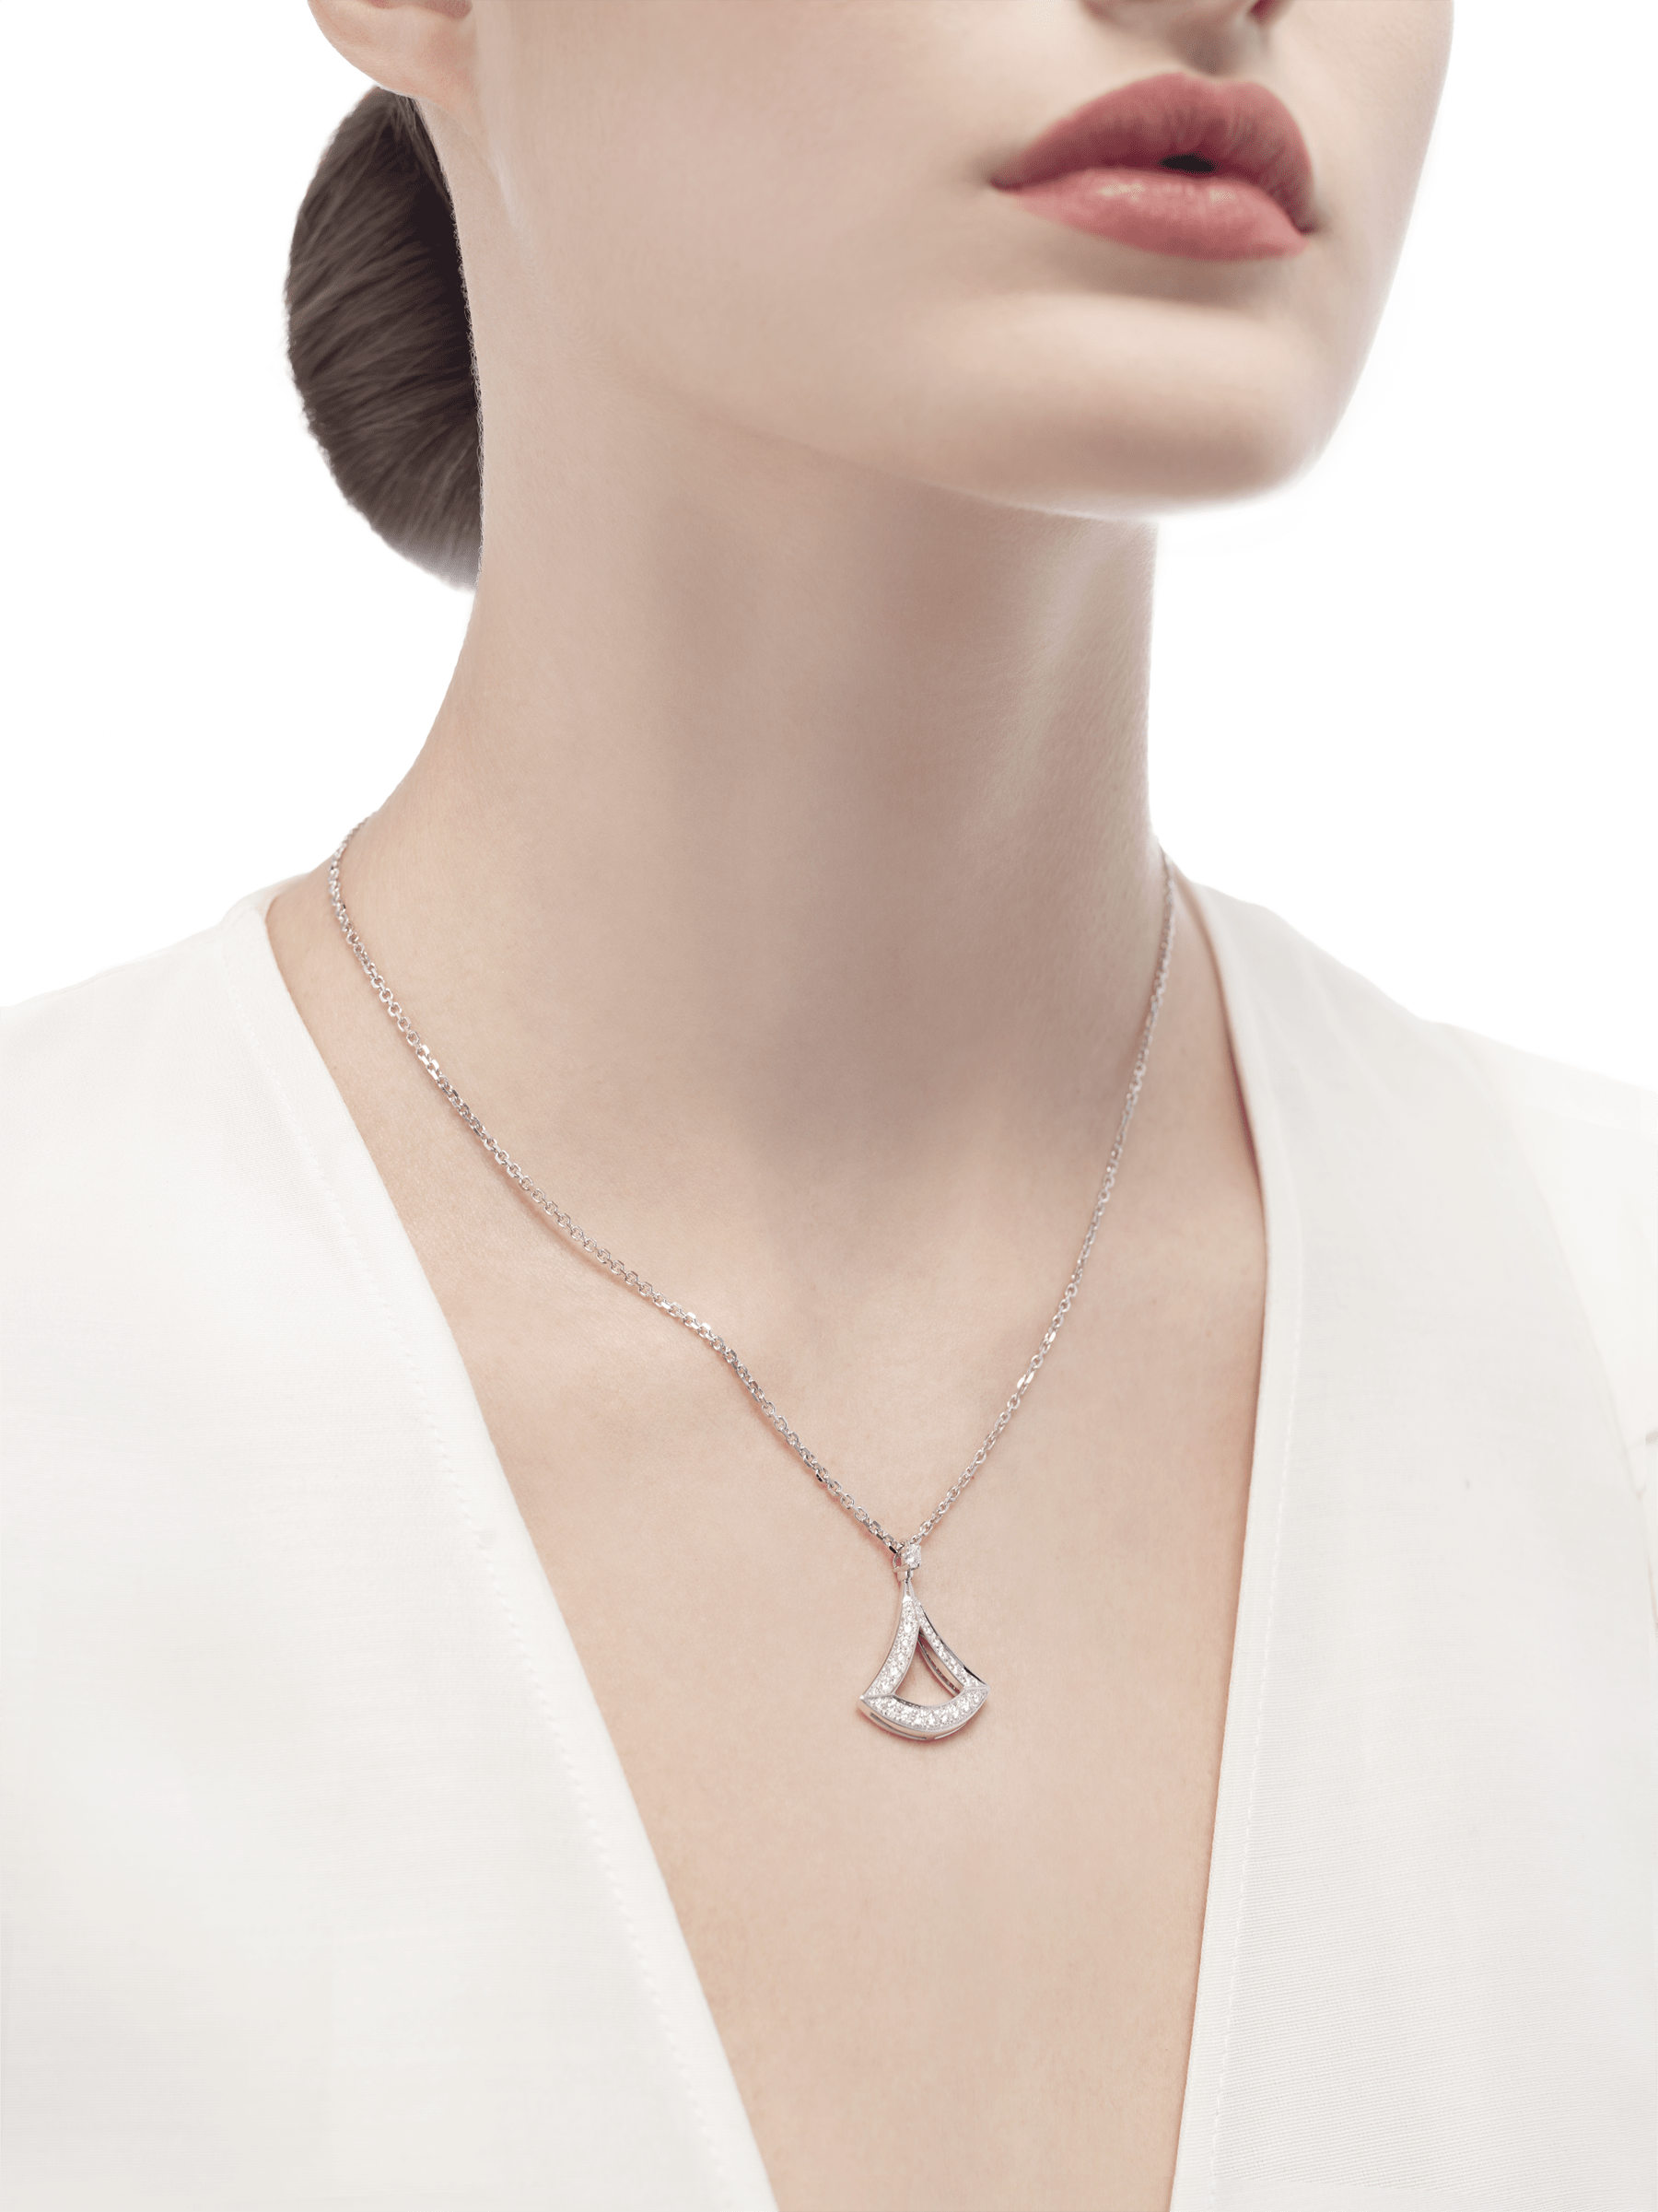 DIVAS' DREAM openwork necklace in 18 kt white gold with 18 kt white gold pendant set with pavé diamonds. 354047 image 3